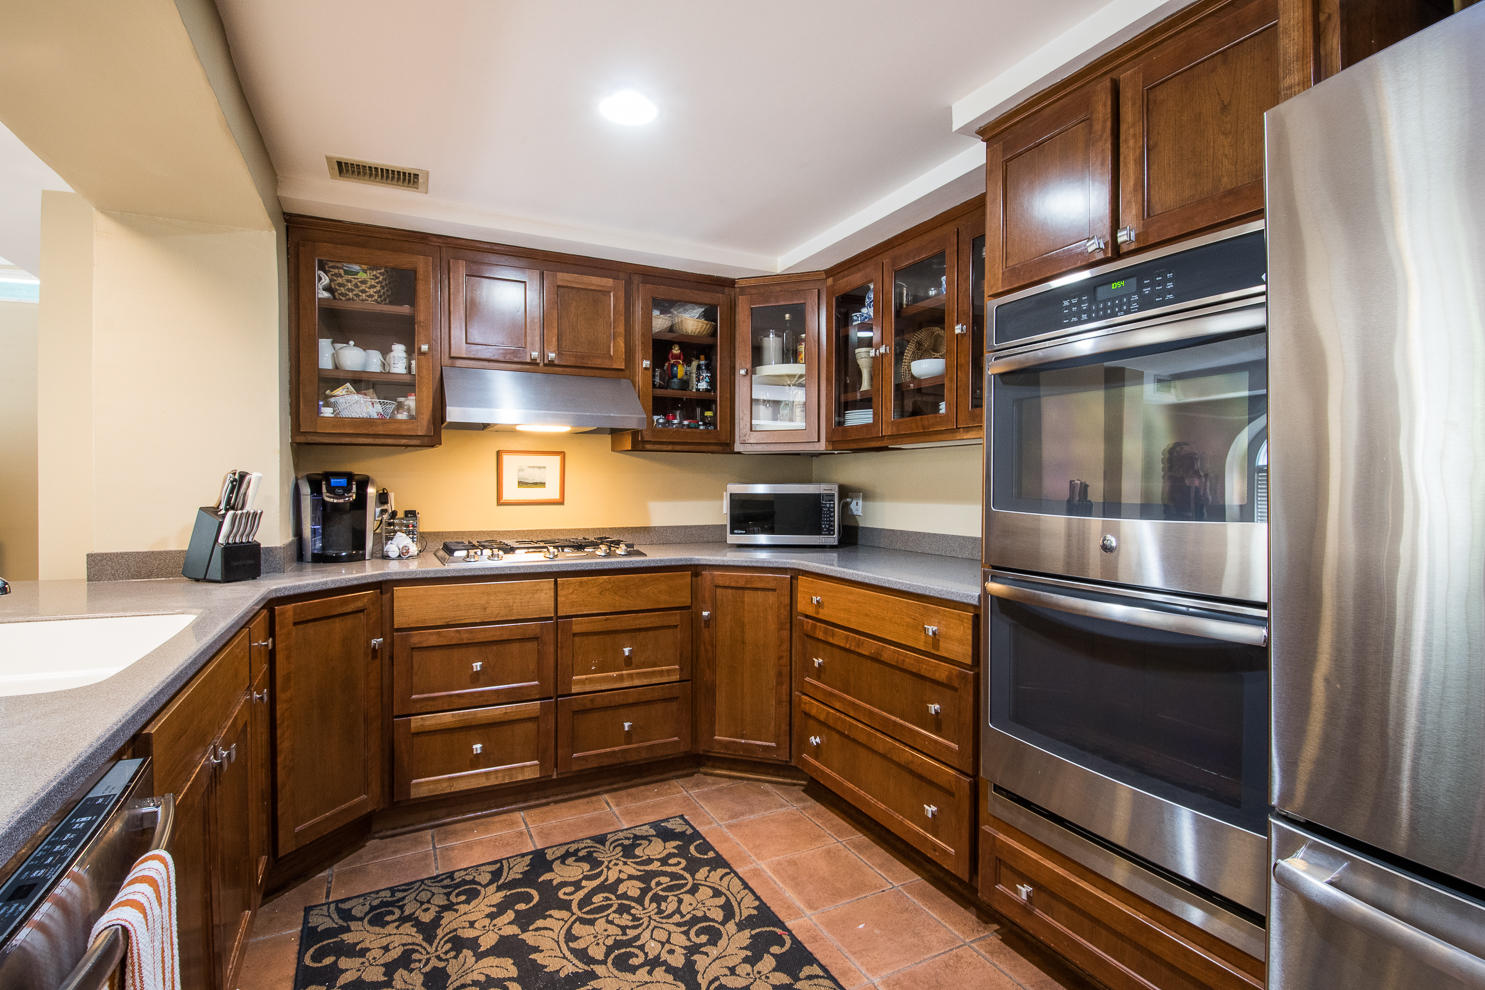 South of Broad Homes For Sale - 1 Prices, Charleston, SC - 52